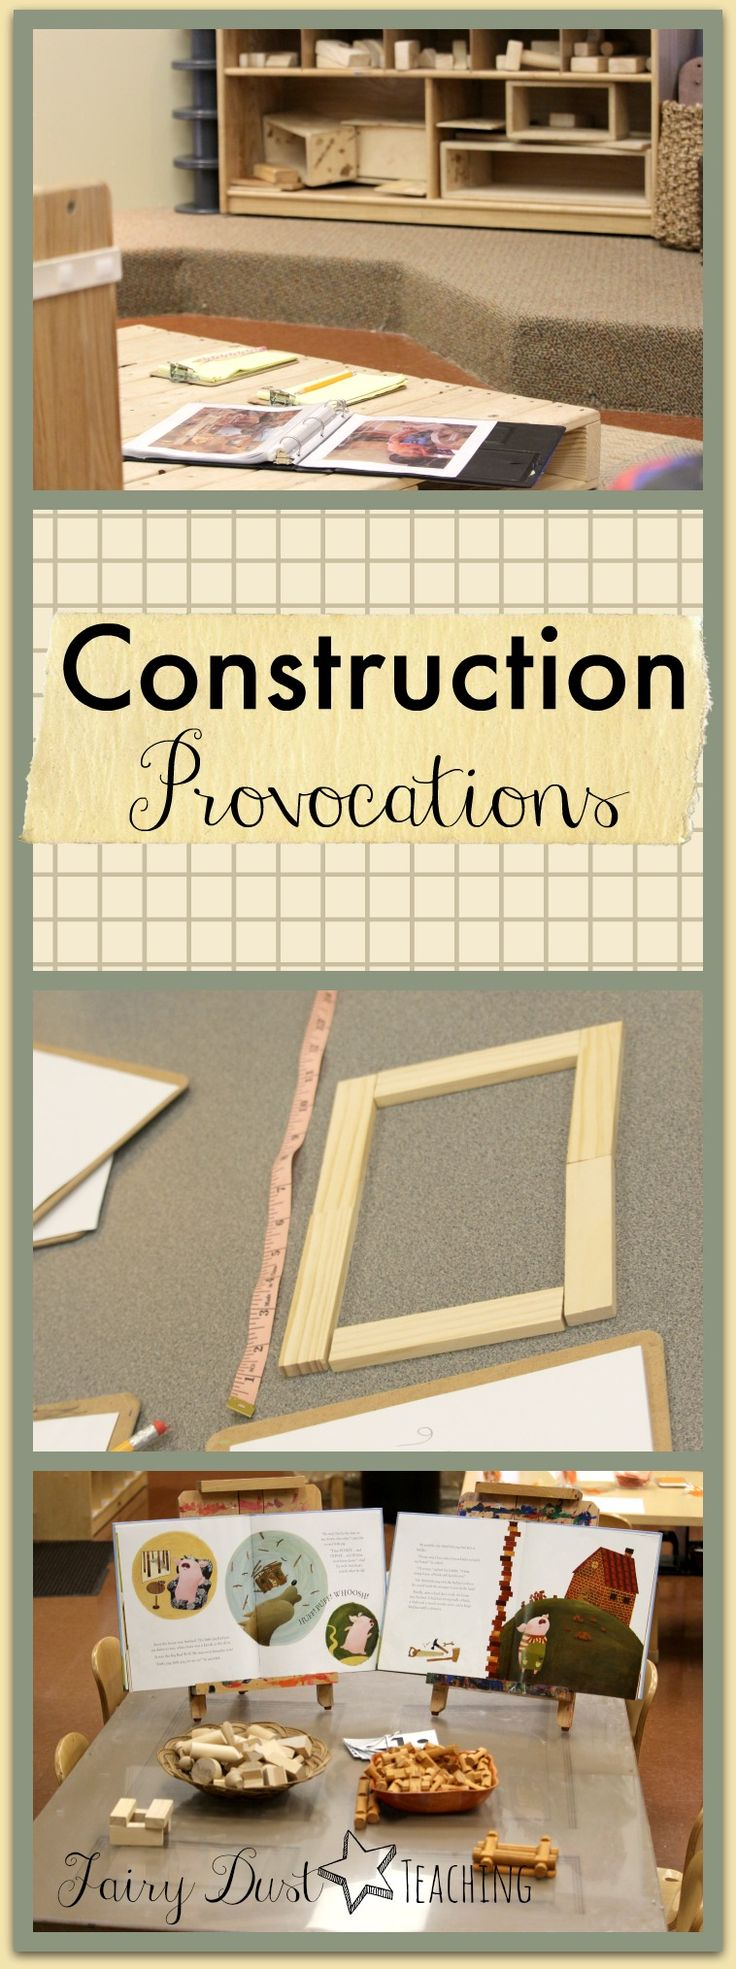 Construction Provocations from Rosa Parks ECEC found at Fairy Dust Teaching.